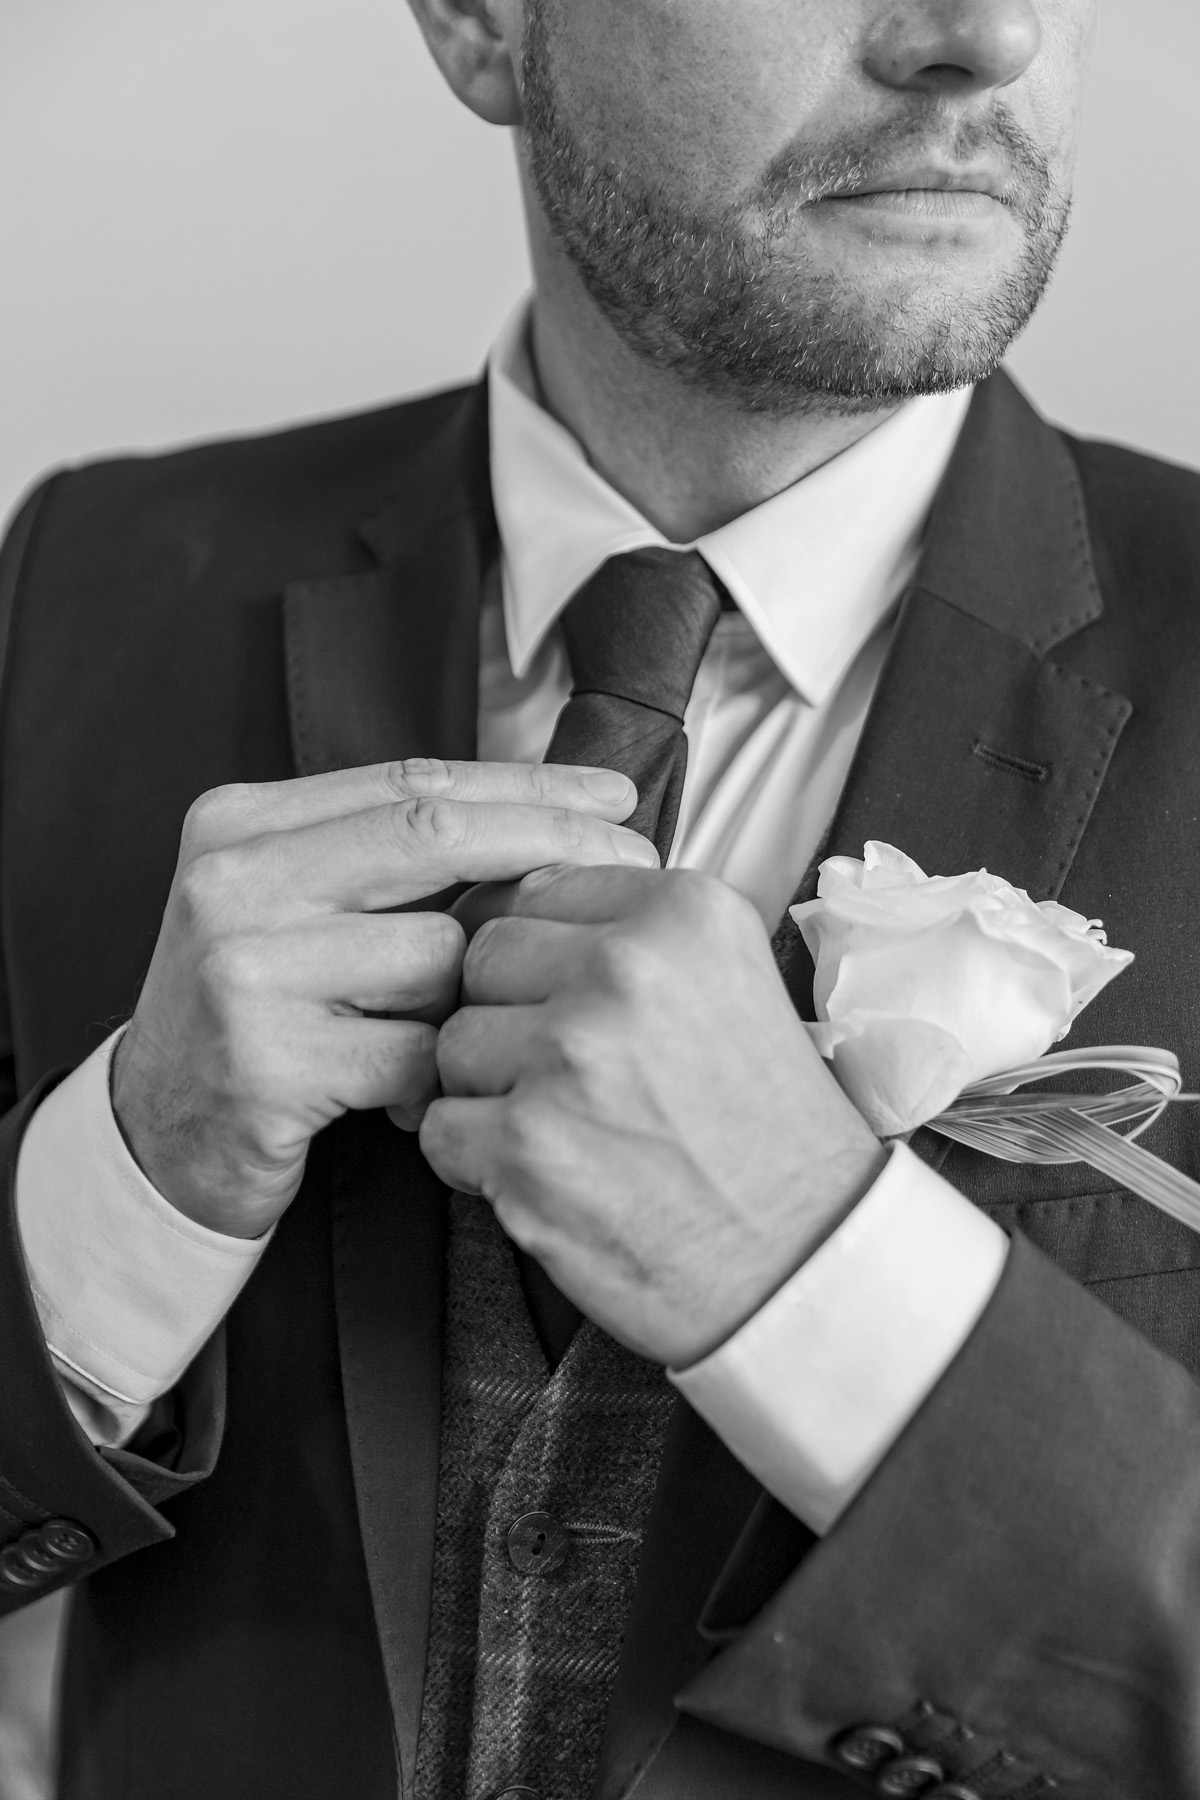 Groom doing his tie up before wedding at Warwick house